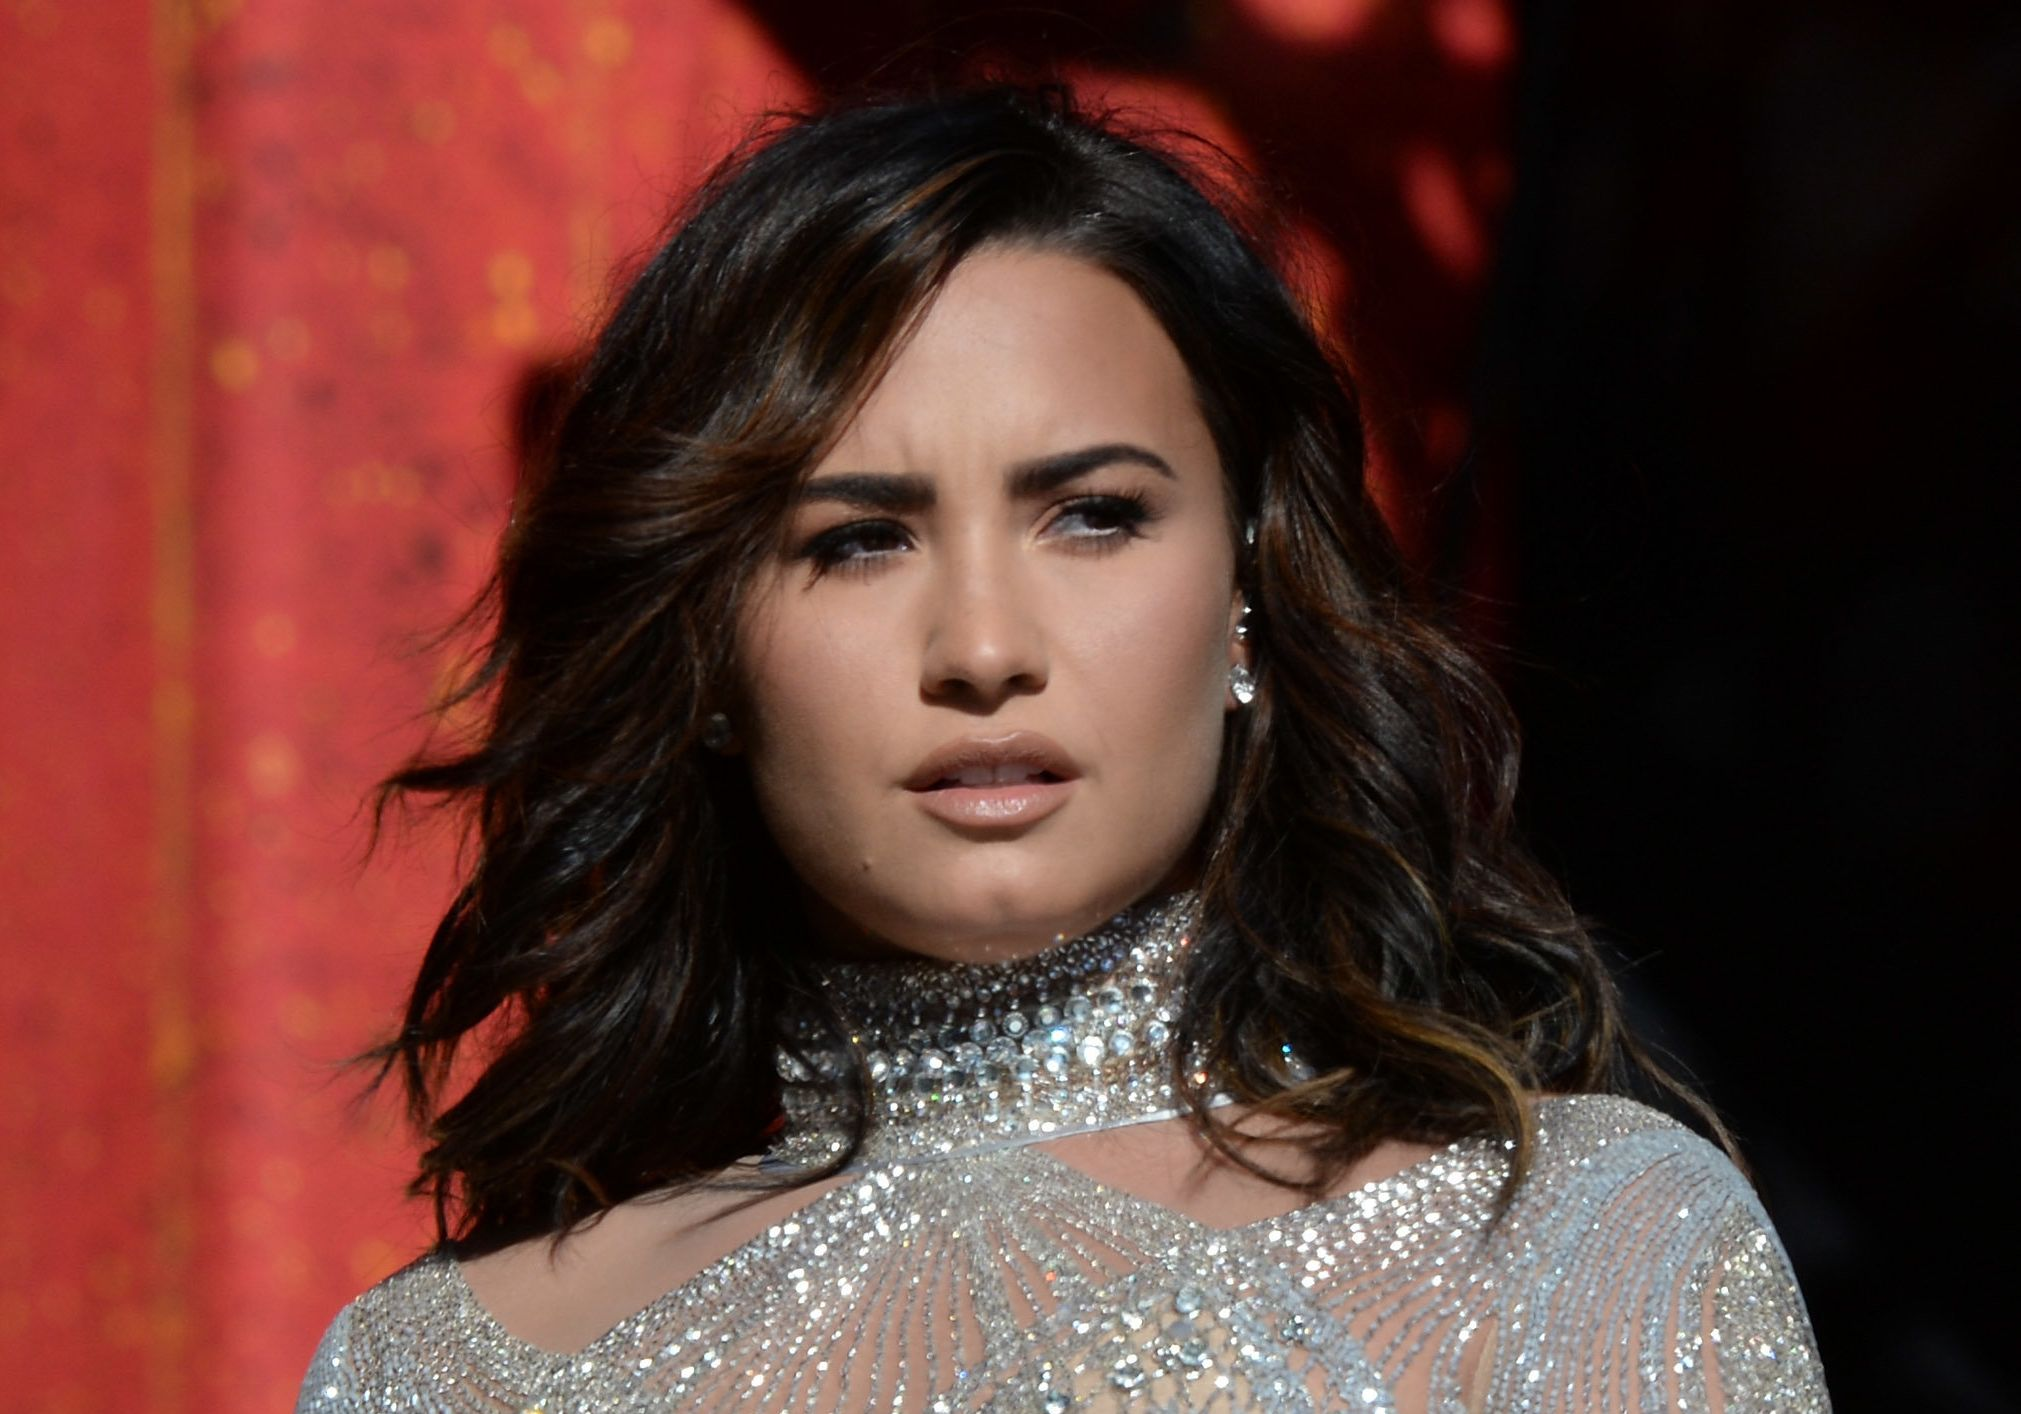 Demi Lovato Calls Out Fan Artist For Giving Her Unrealistic Body